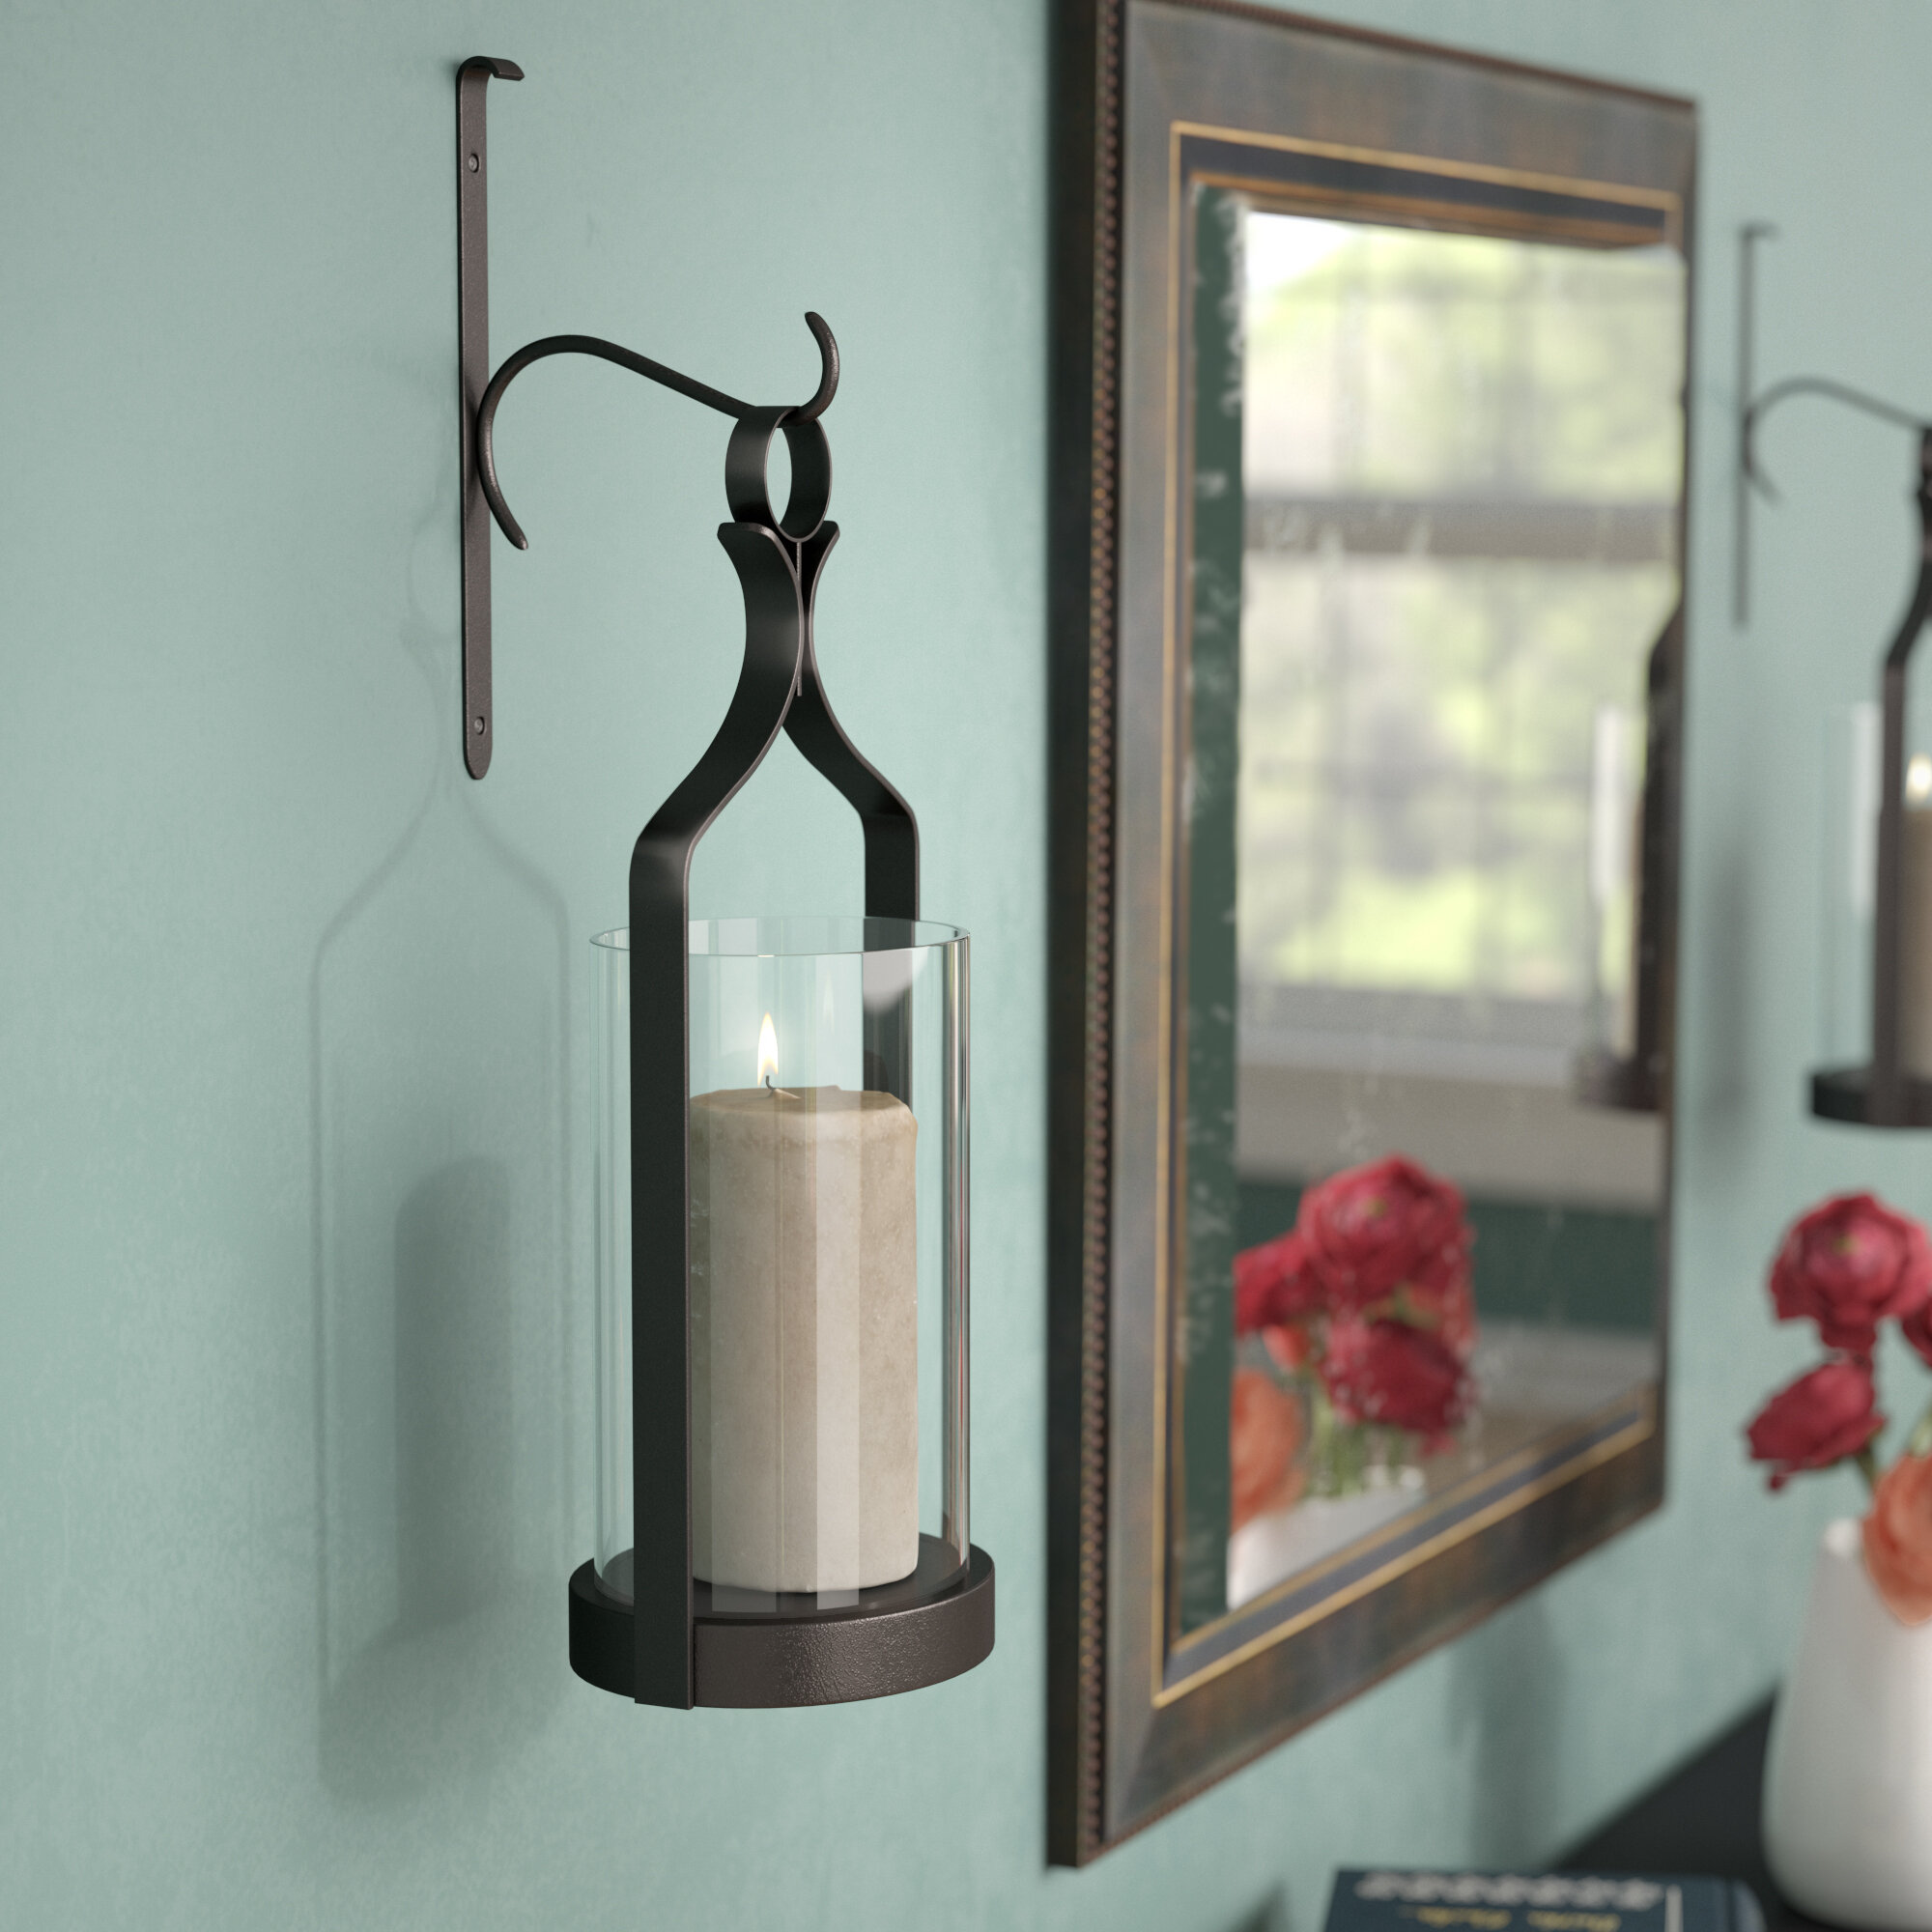 Attractive Three Posts Glass Wall Sconce U0026 Reviews | Wayfair